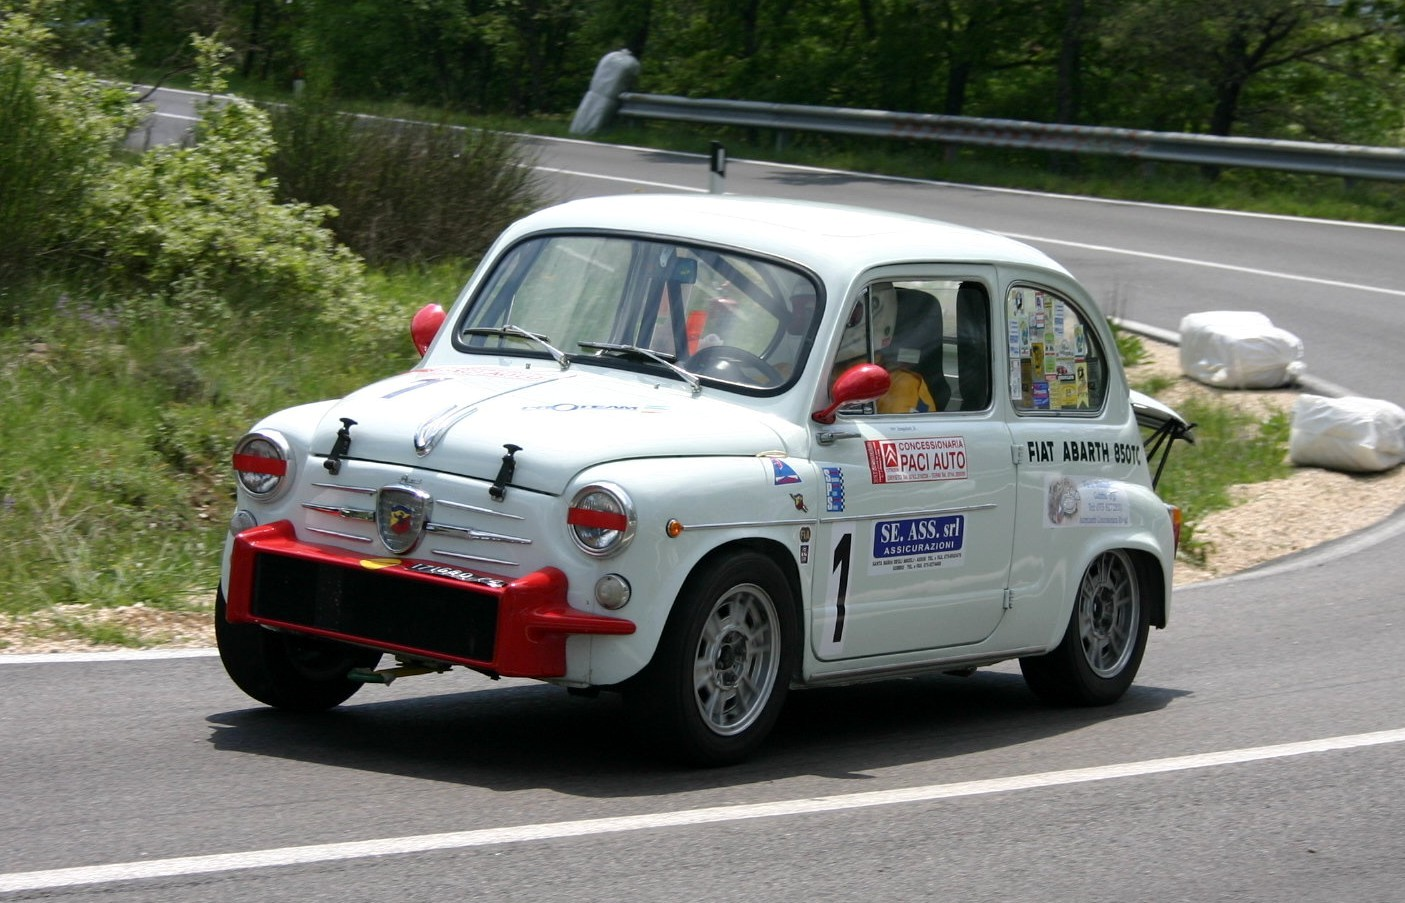 Abarth 850 photo - 2